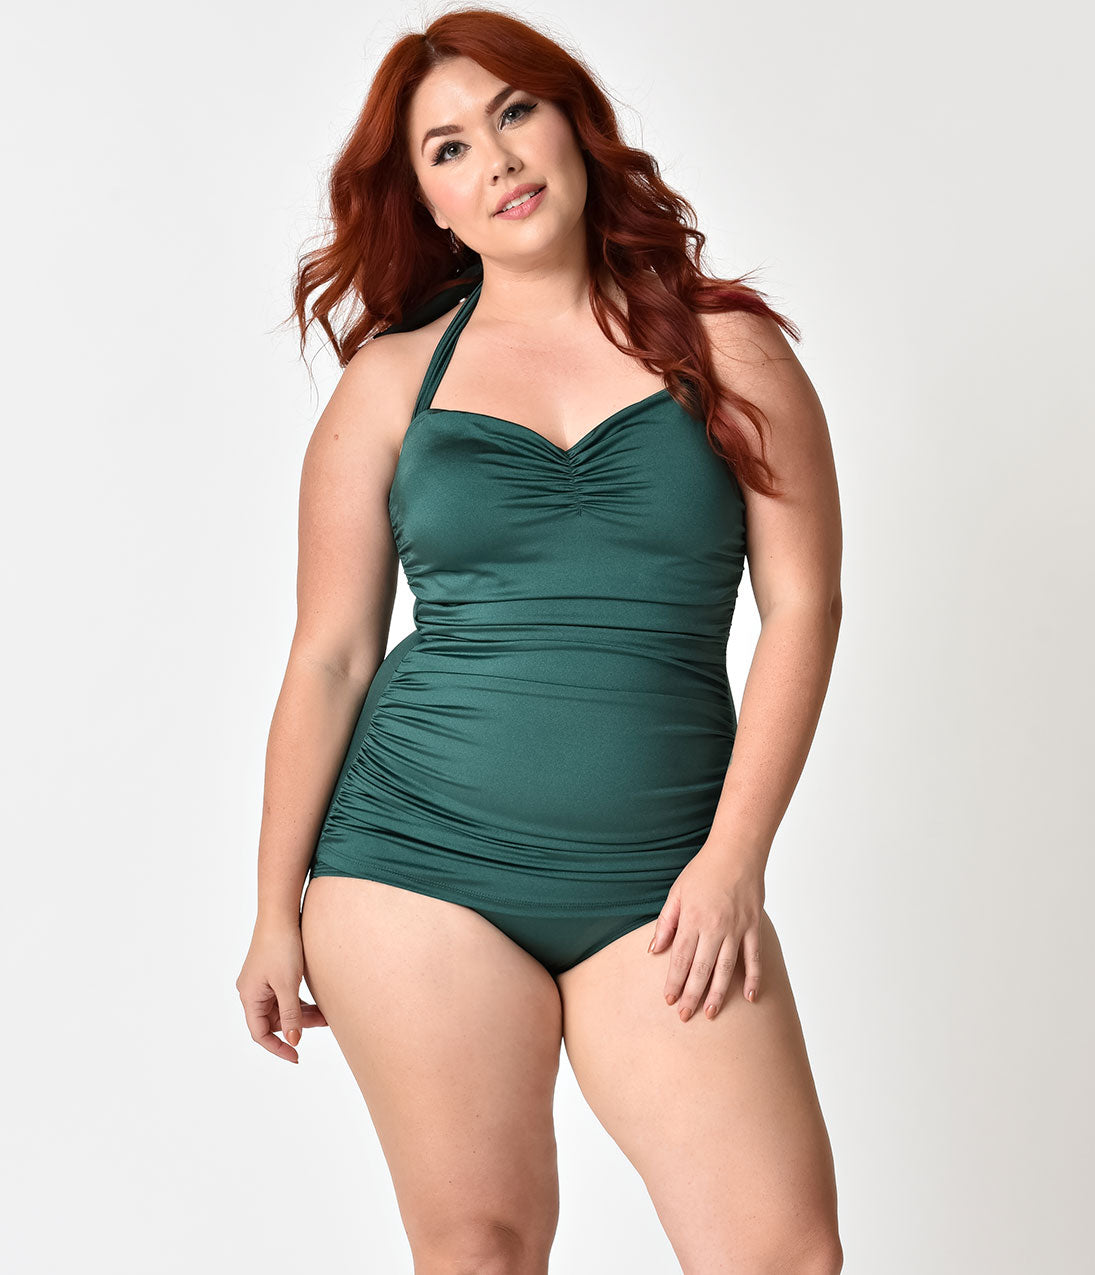 1950s Swimsuits, 50s Bathing Suits, Retro Swimwear Esther Williams Plus Size 1950S Style Pin Up Emerald Green Swimsuit $88.00 AT vintagedancer.com